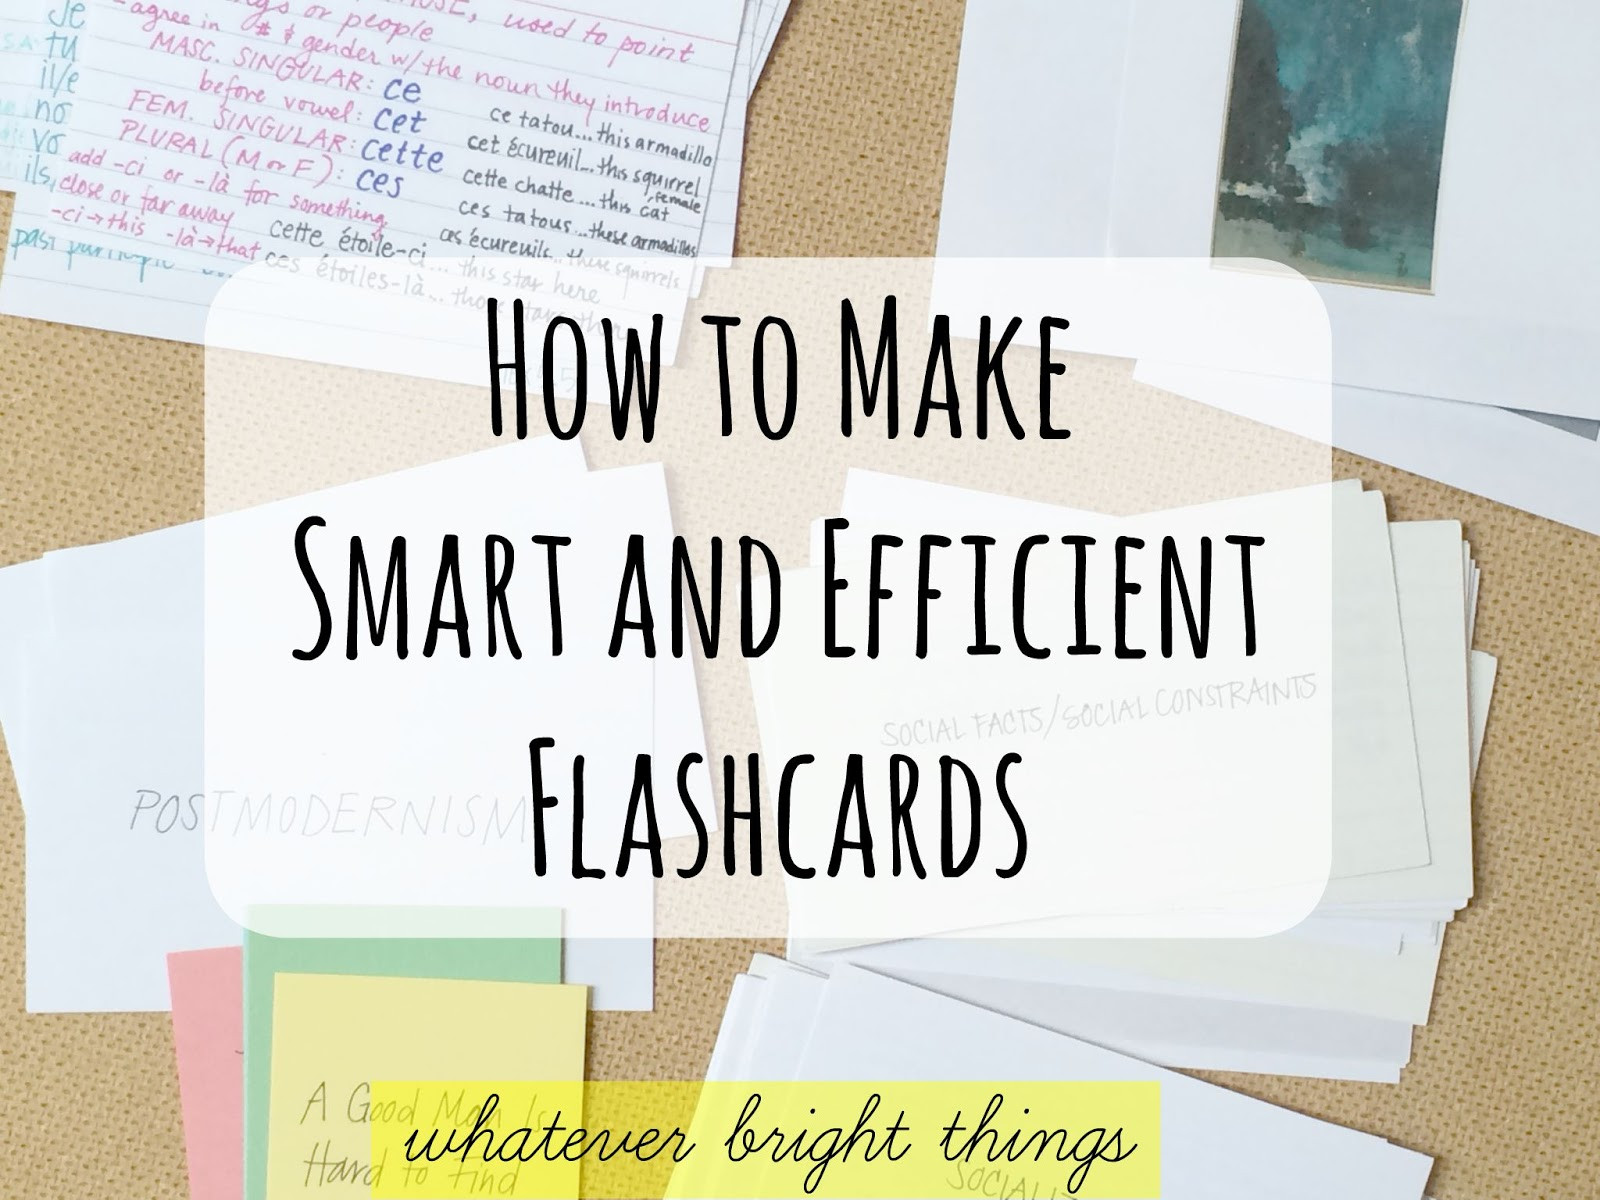 Image Of How To Make A Flash Card 5 Ways to Make Flash Cards ...